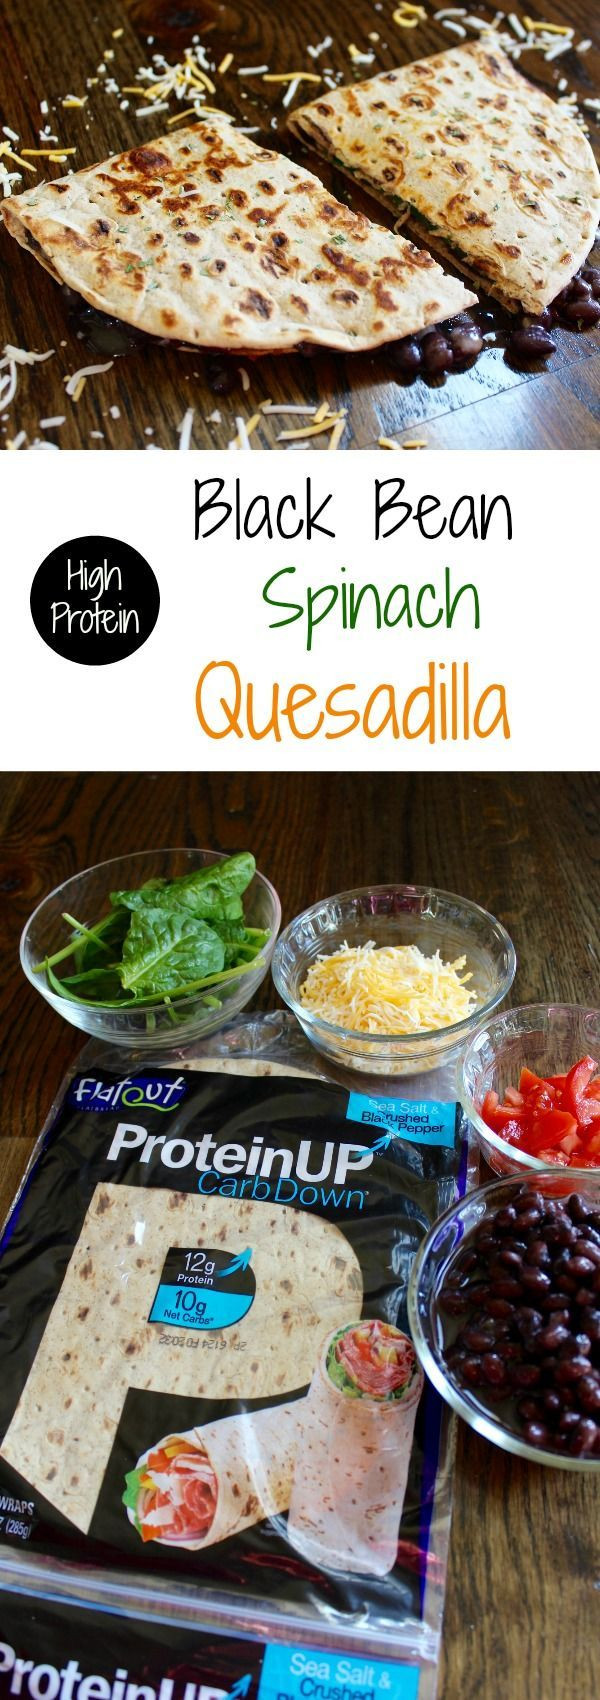 Protein Dinners For Weight Loss  Best 25 Healthy eating ideas on Pinterest